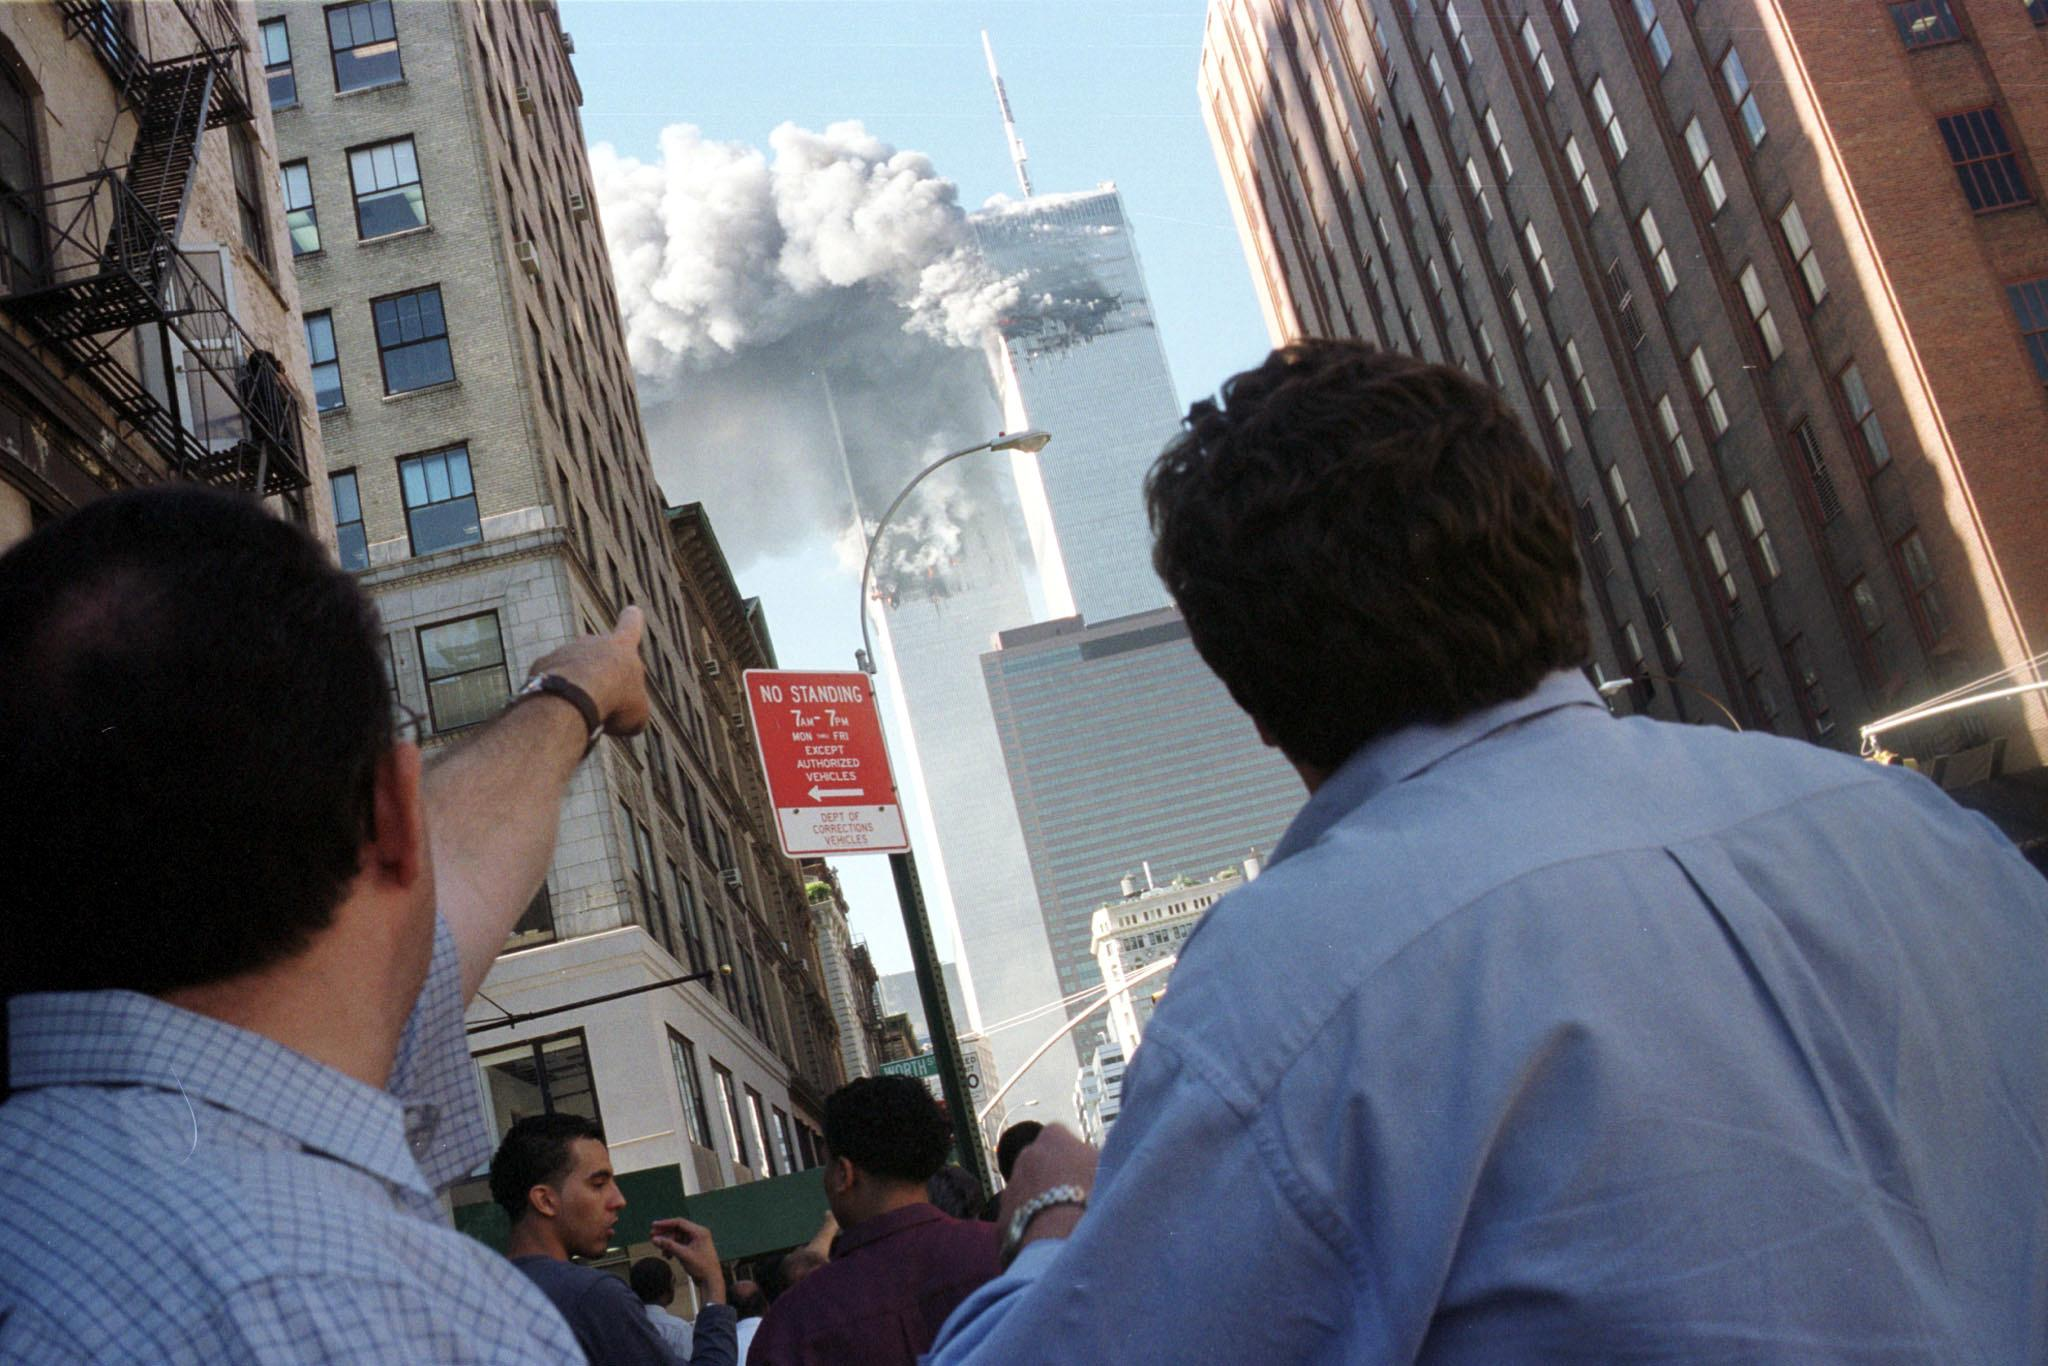 Sep 11 attacks